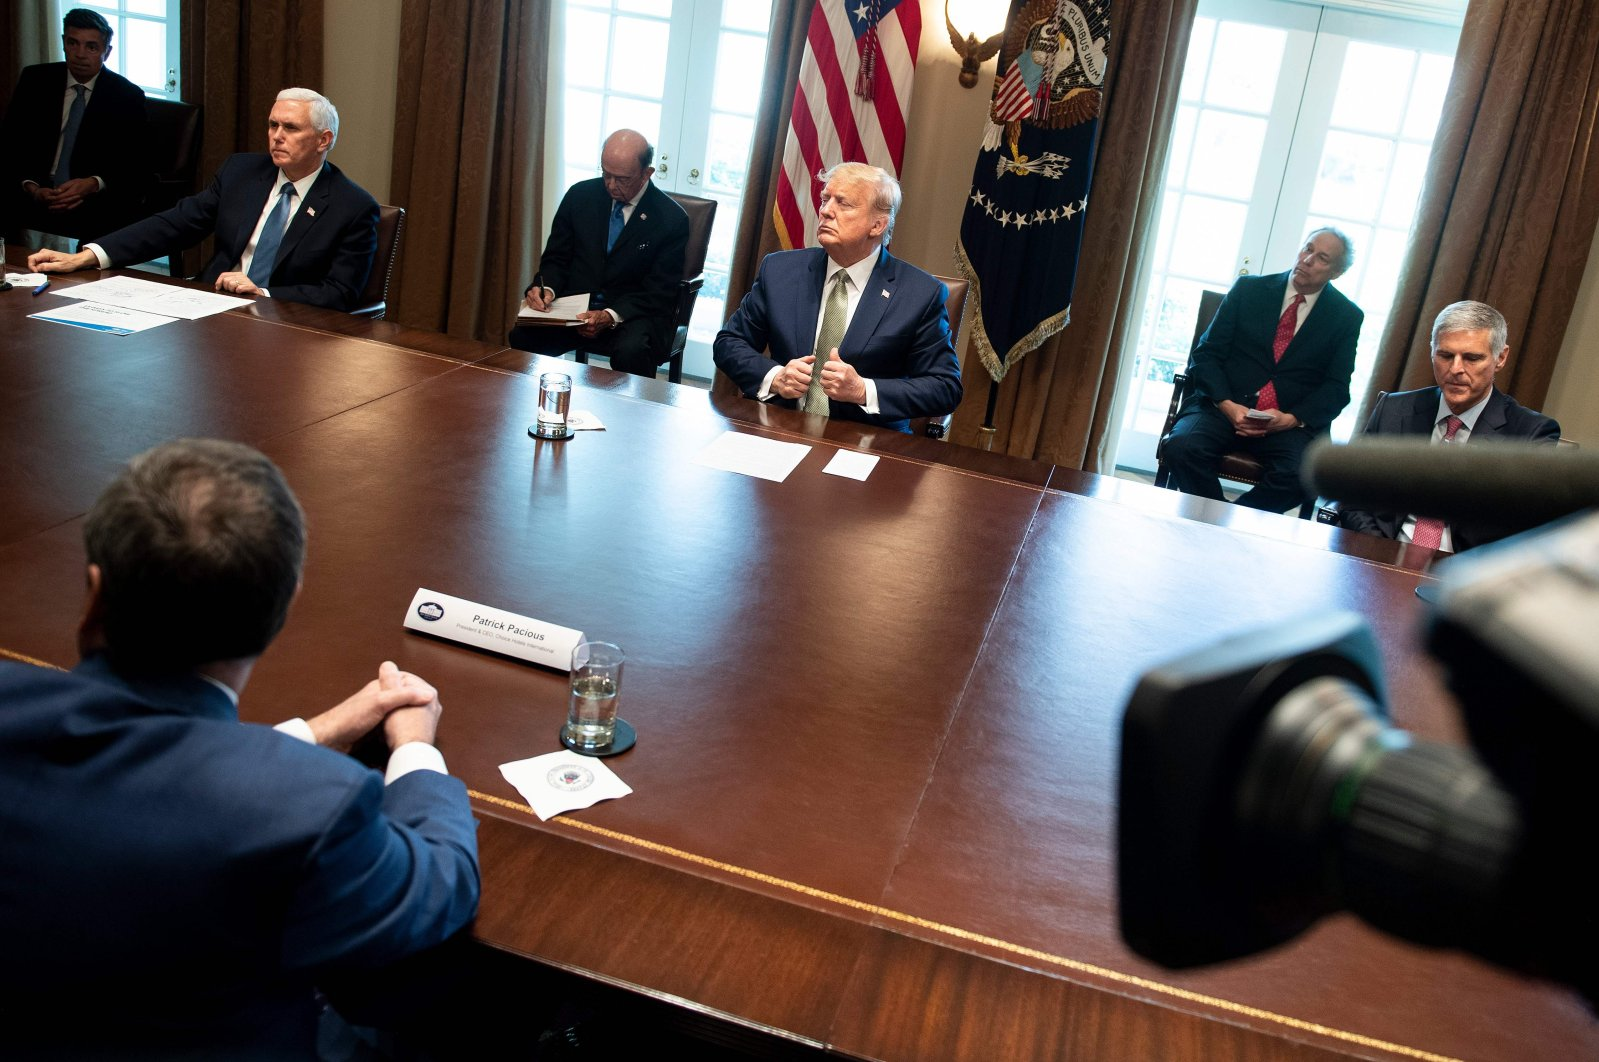 U.S. President Donald Trump and U.S. Vice President Mike Pence listen during a meeting with hotel and tourism executives in the Cabinet Room of the White House about the effect of the novel coronavirus epidemic, Tuesday, March 17, 2020. (AFP Photo)